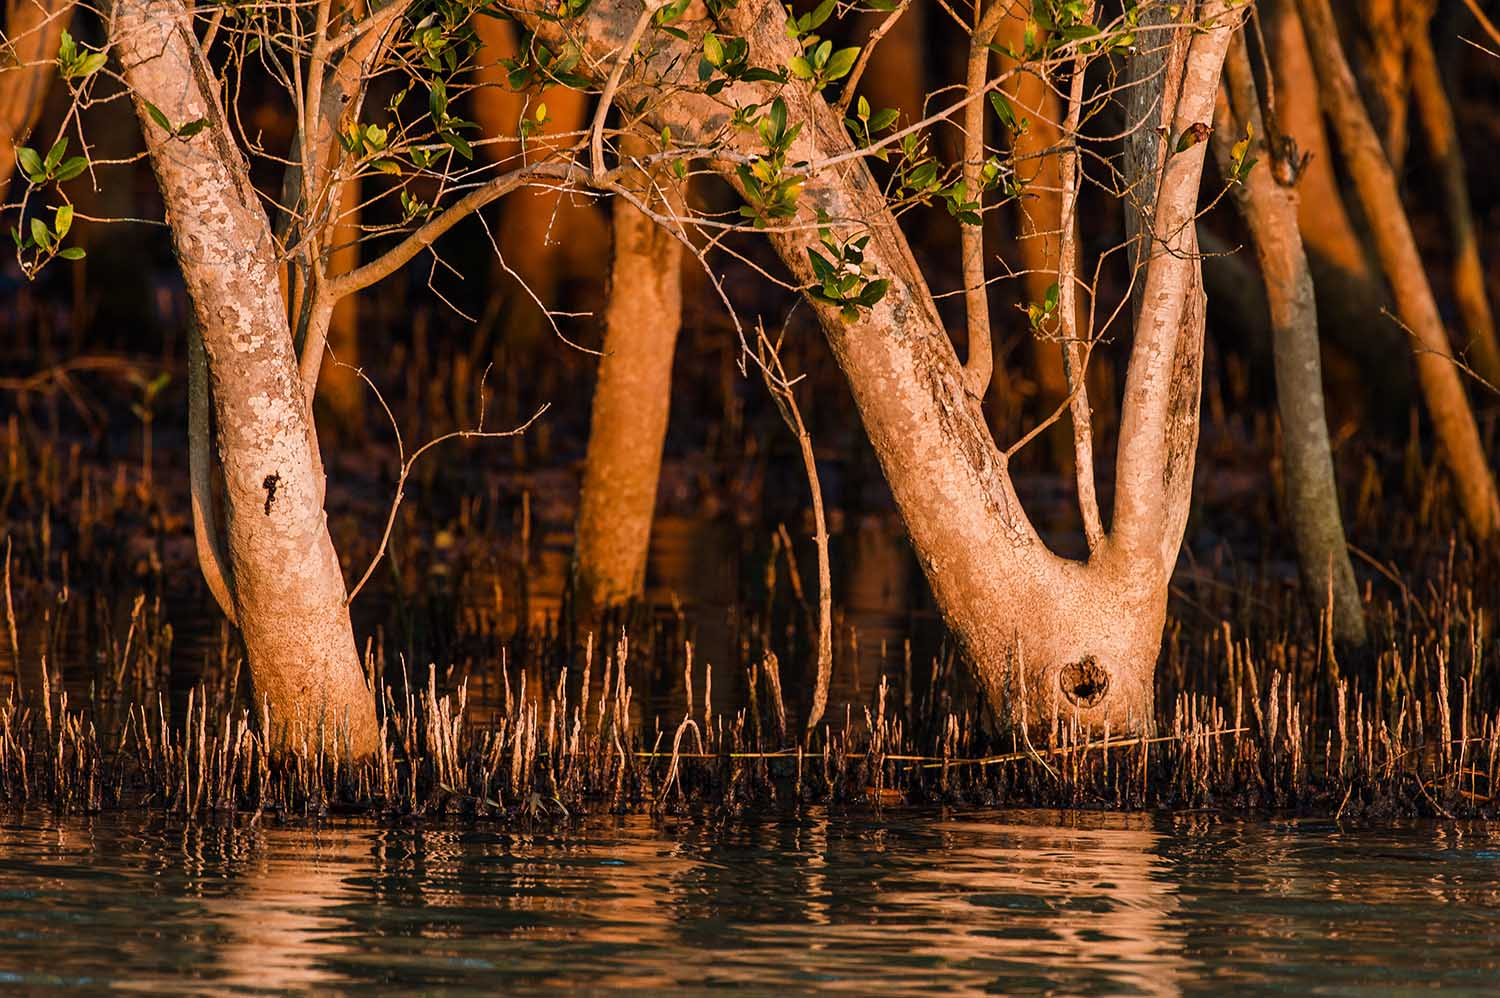 Mangroves are important nursery areas for fish and sharks (Peter Chadwick)